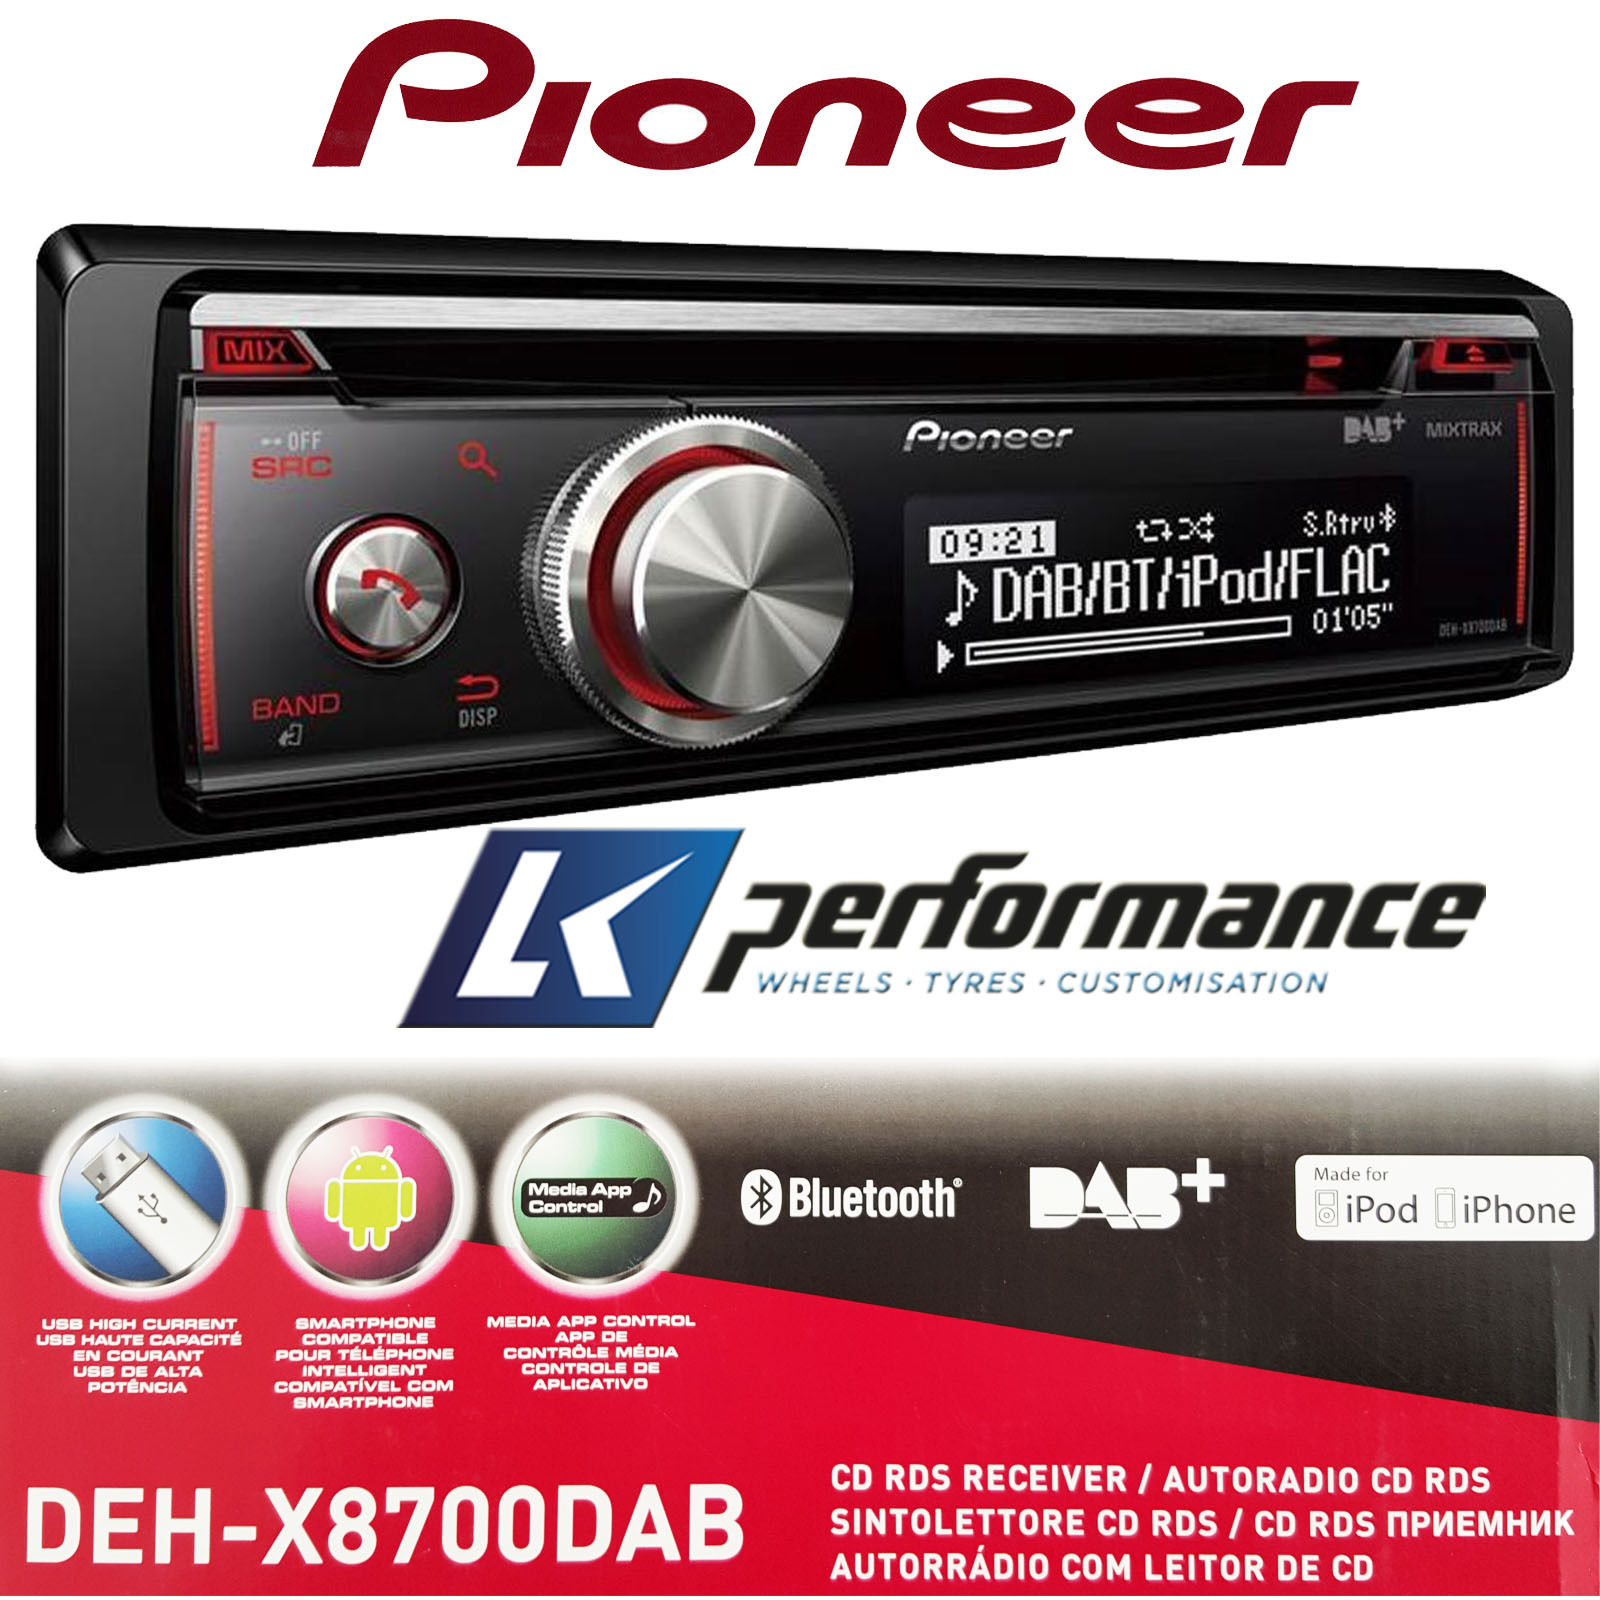 how to connect pioneer car stereo to android